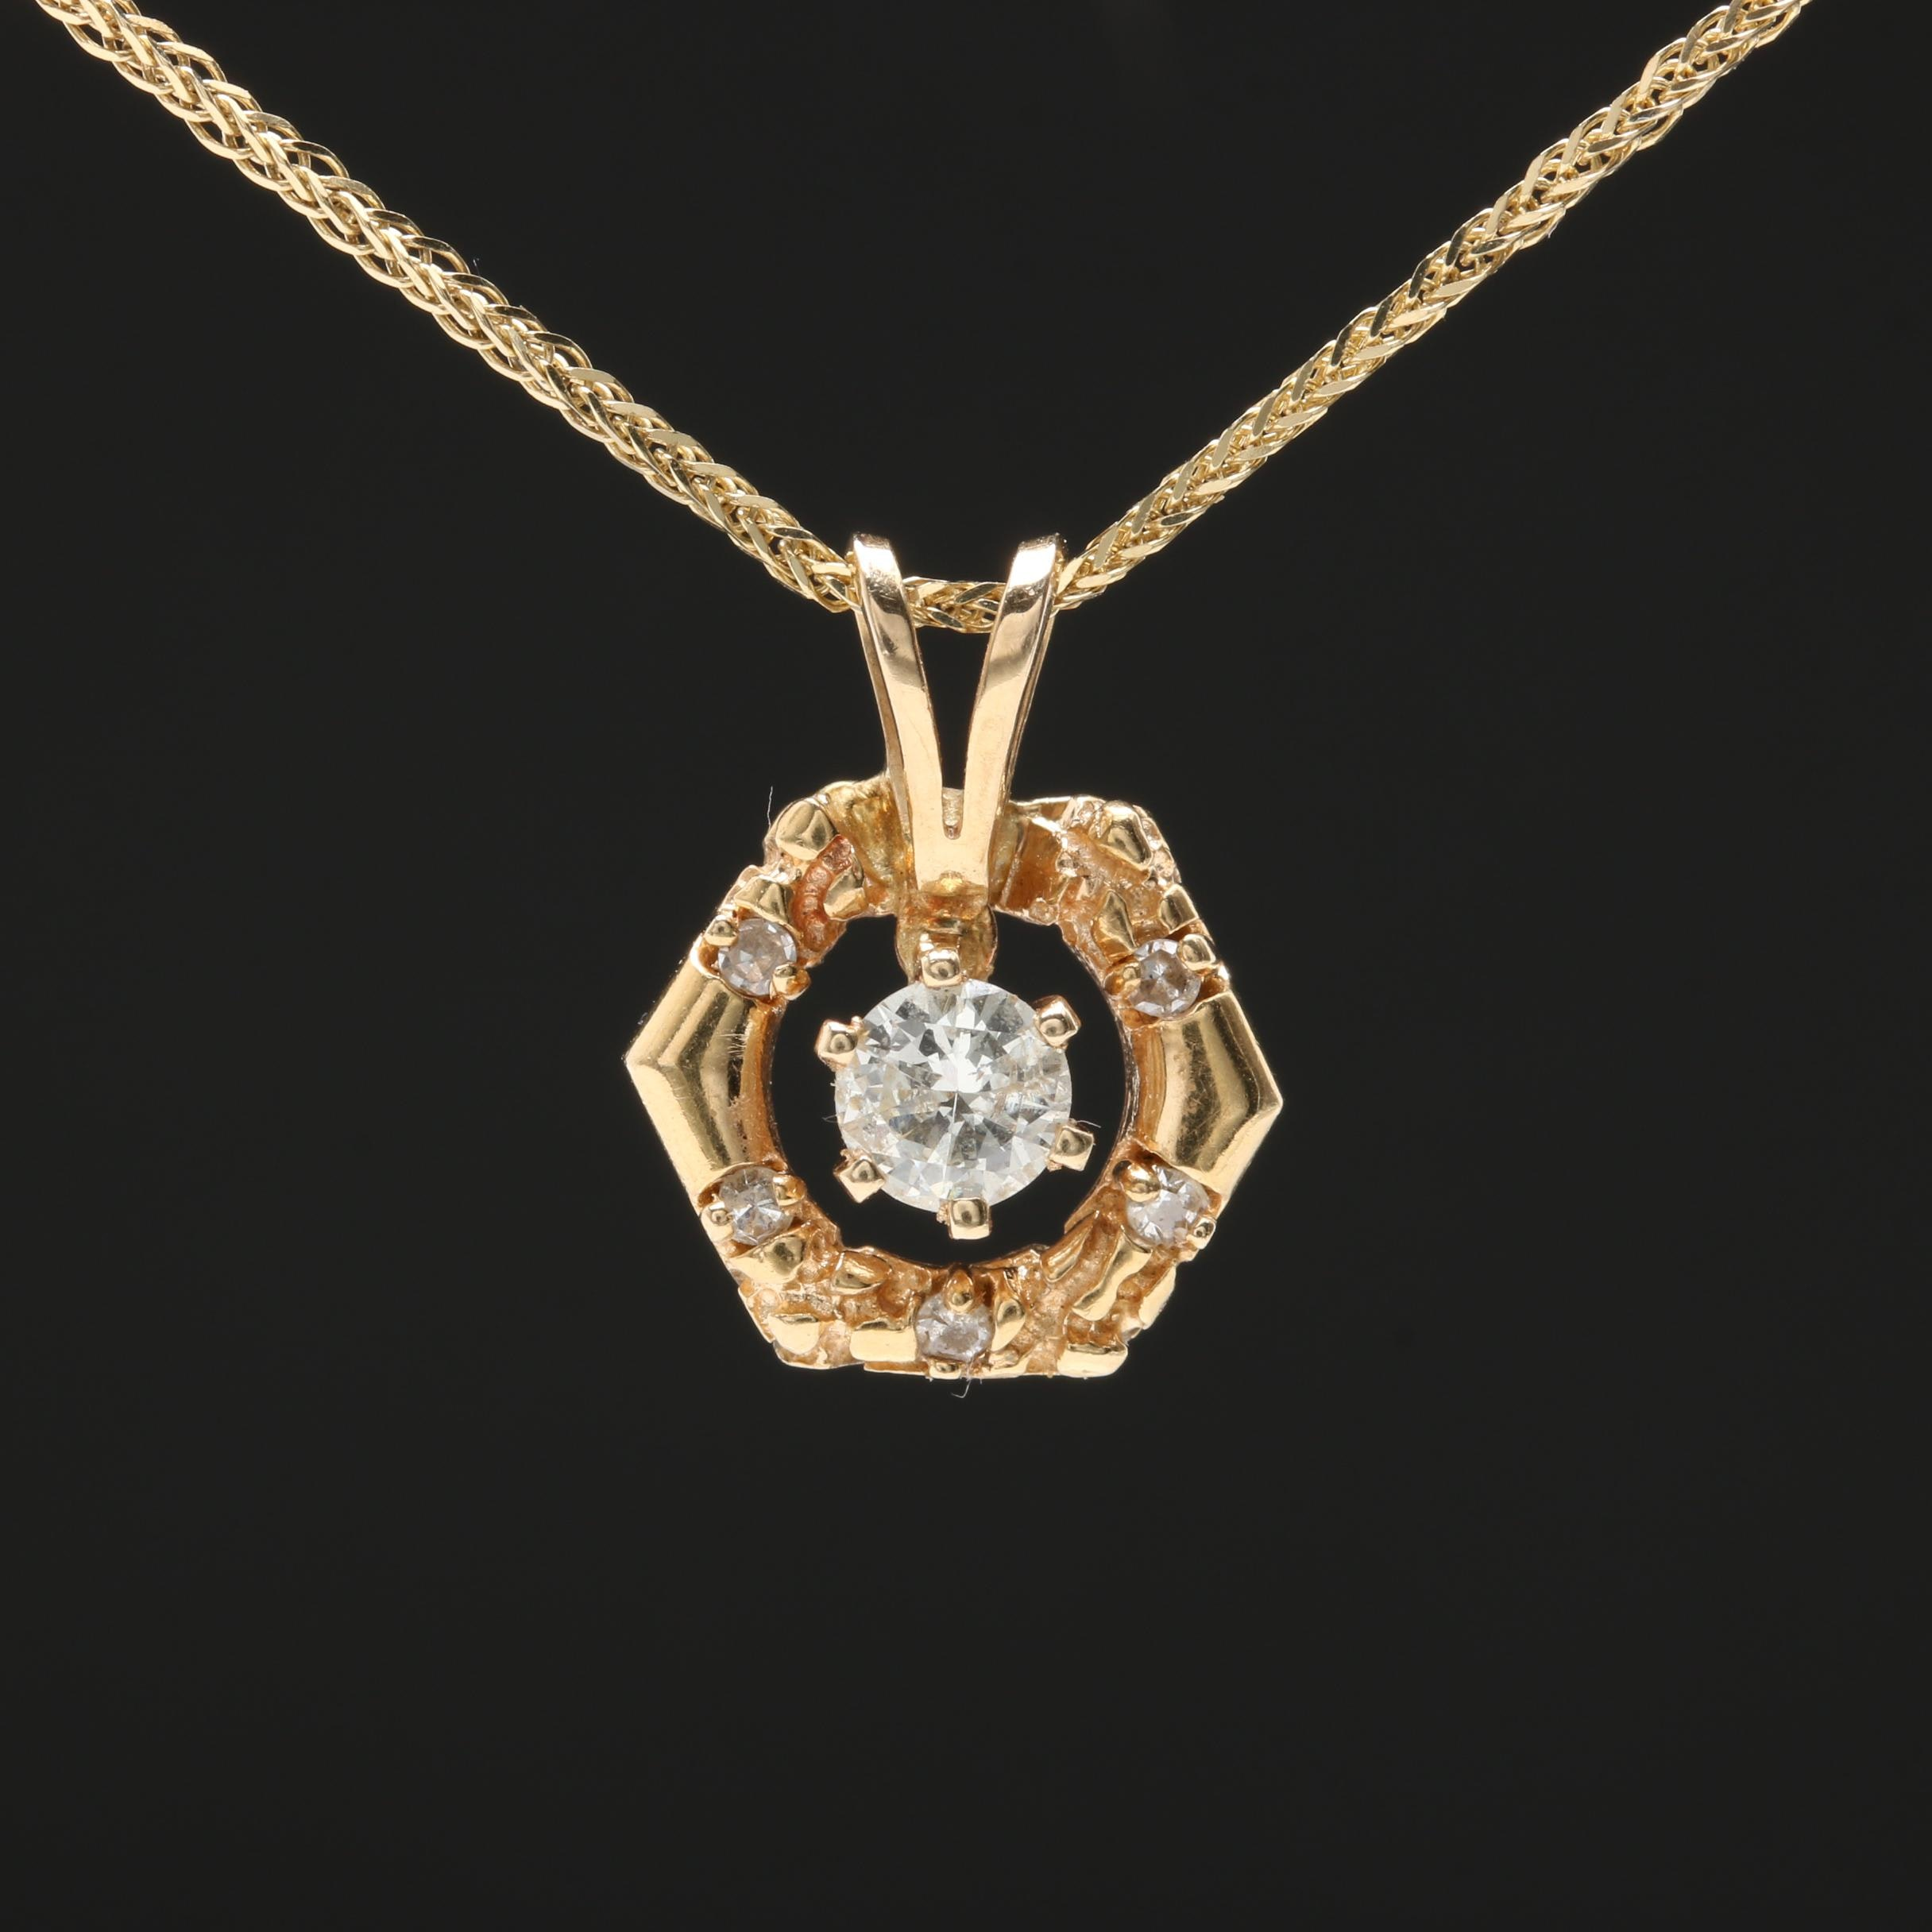 14K Yellow Gold Diamond Hexagon Pendant Necklace